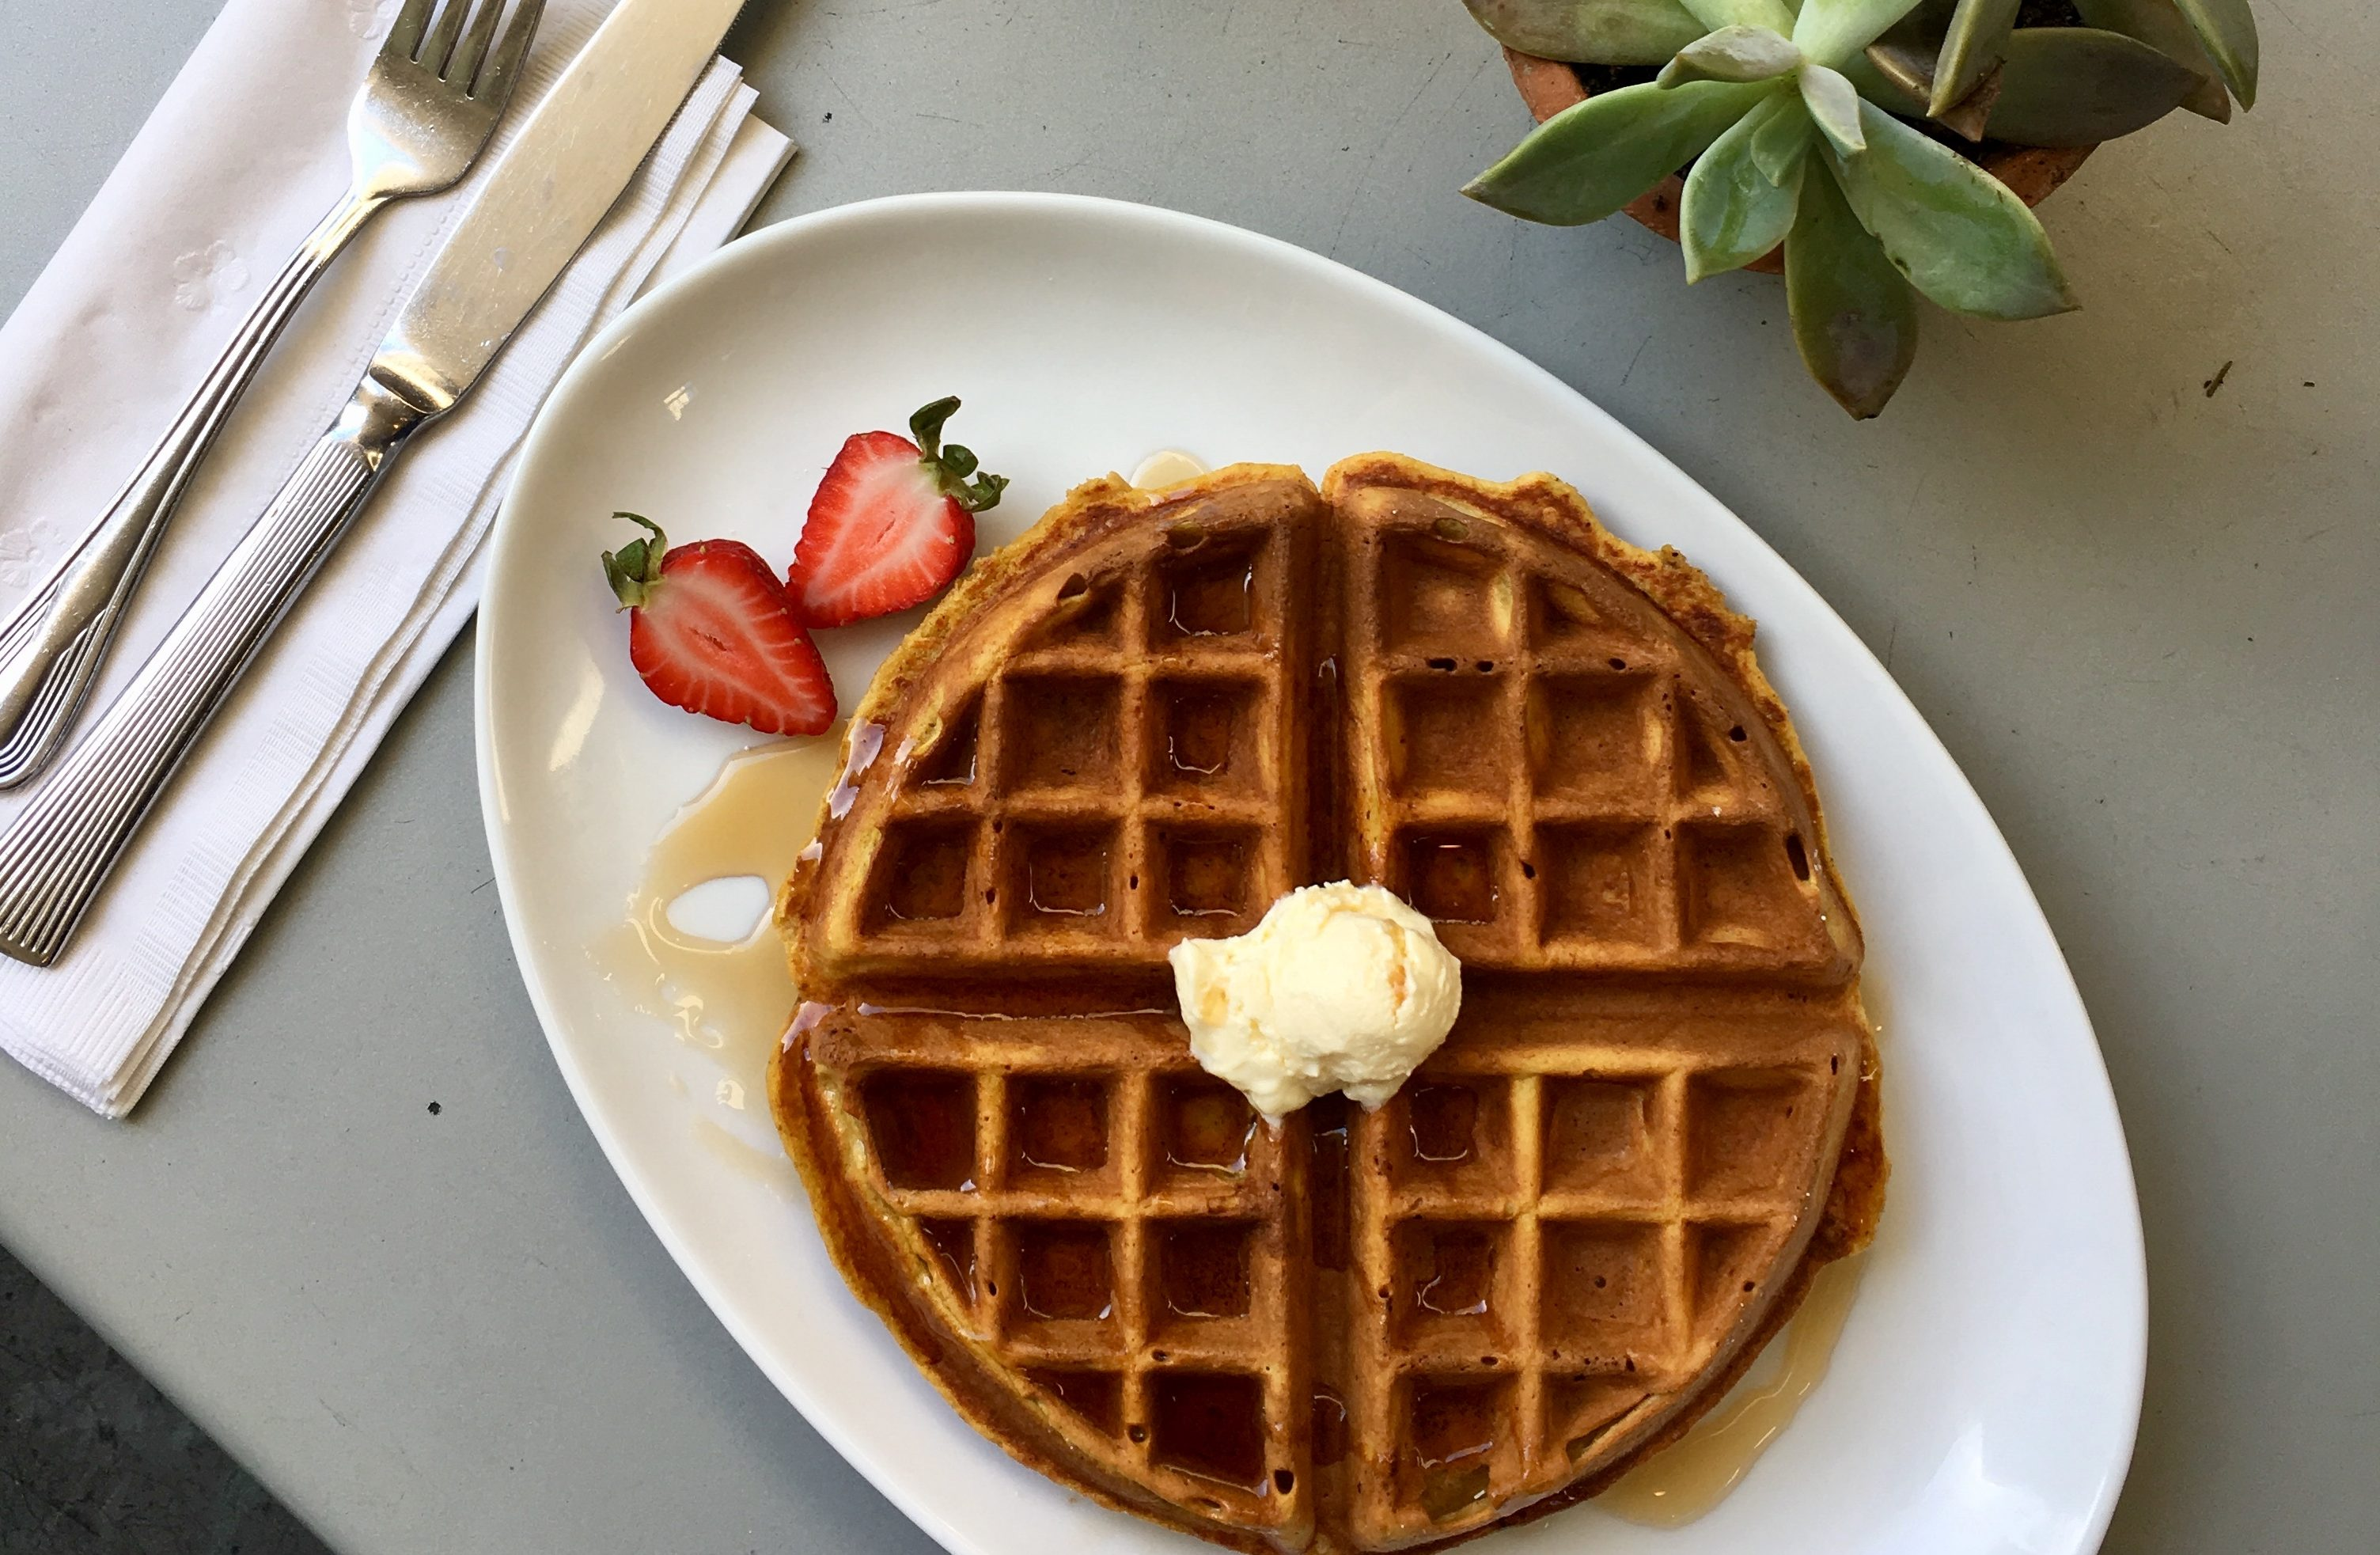 Celebrate Cafe 222s anniversary with their renowned pumpkin waffles.